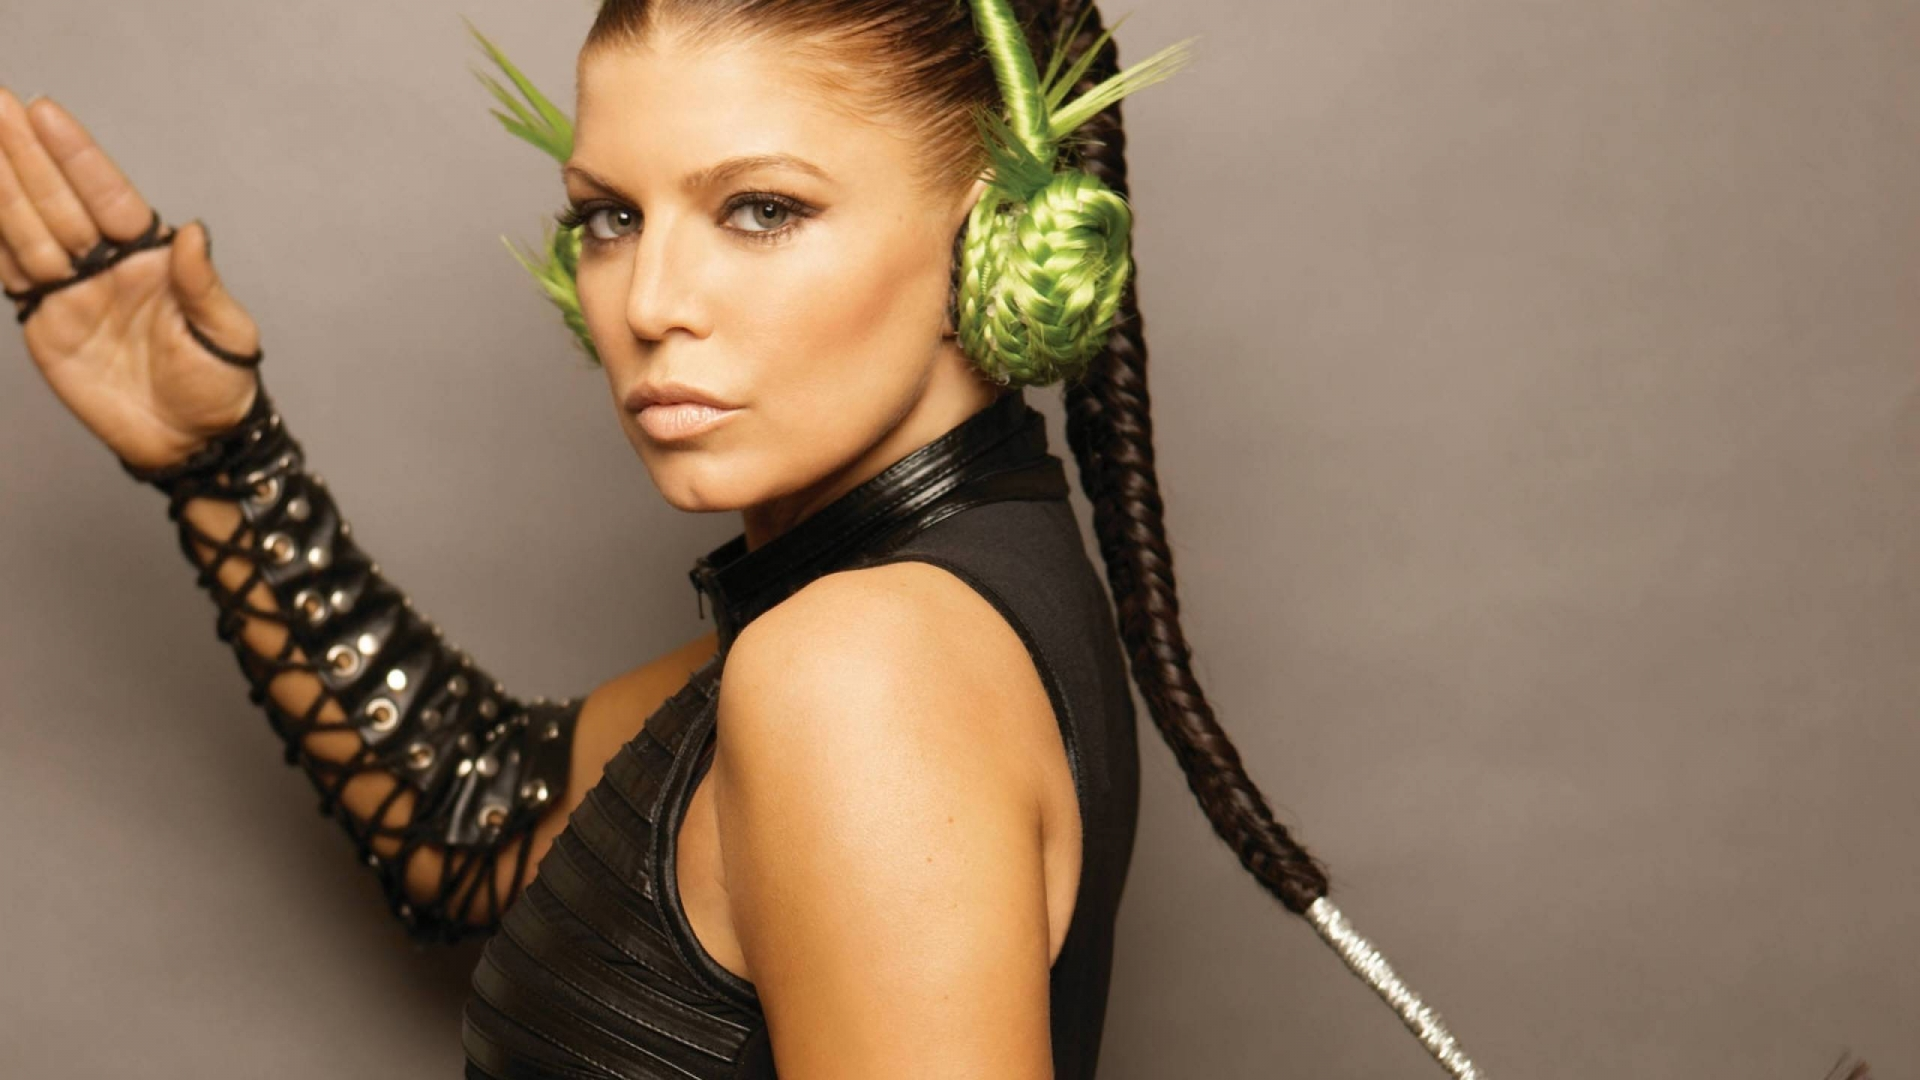 Beautiful Fergie for 1920 x 1080 HDTV 1080p resolution